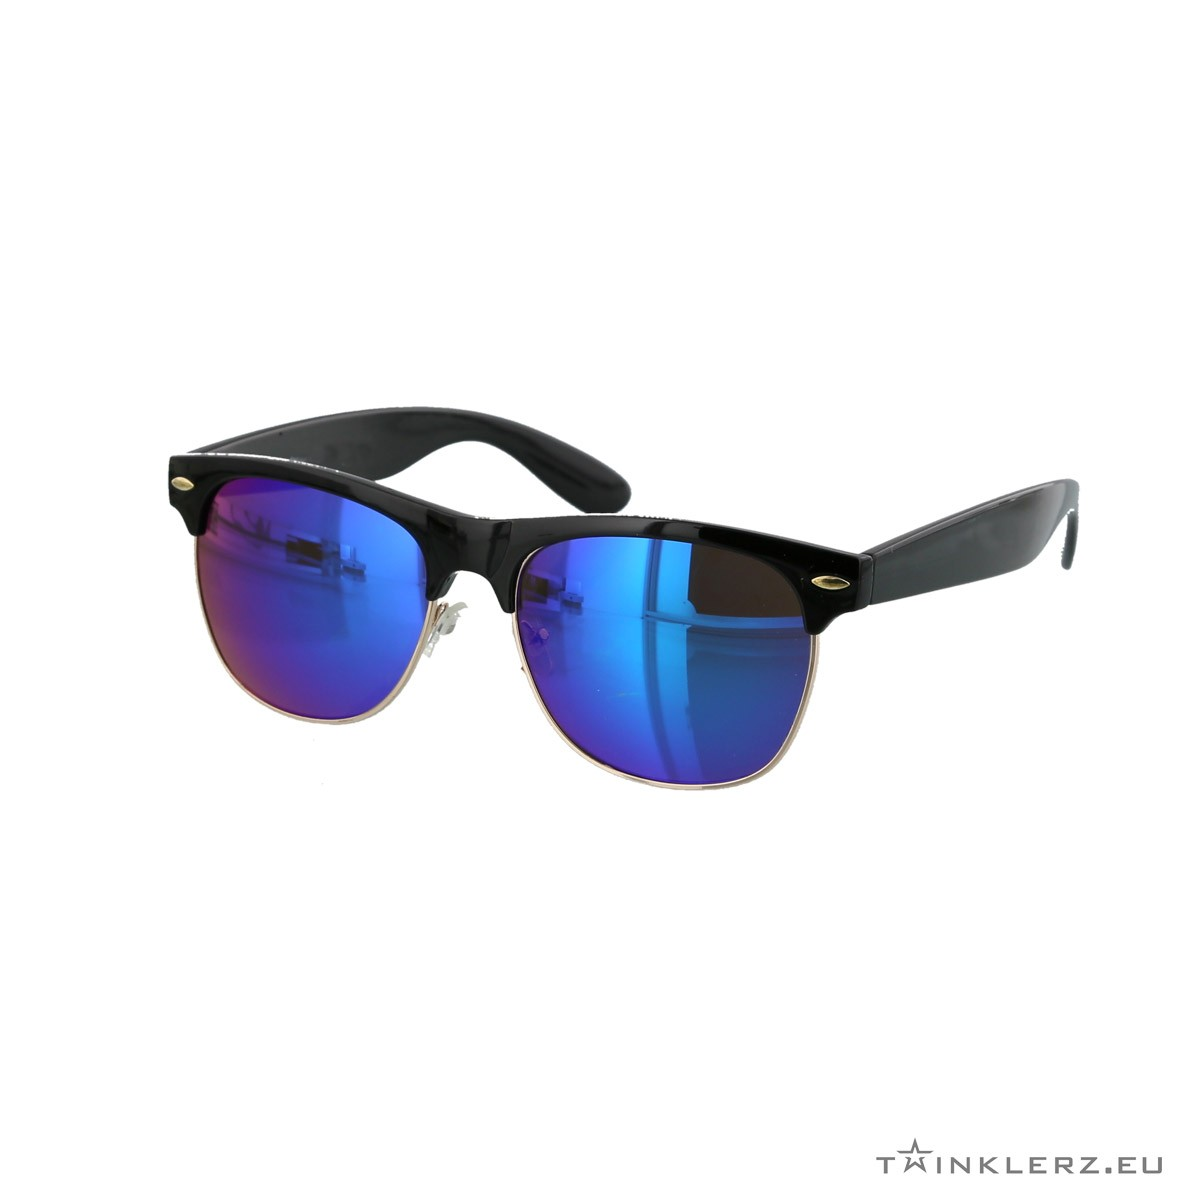 Black clubmaster modern sunglasses blue mirrored lenses